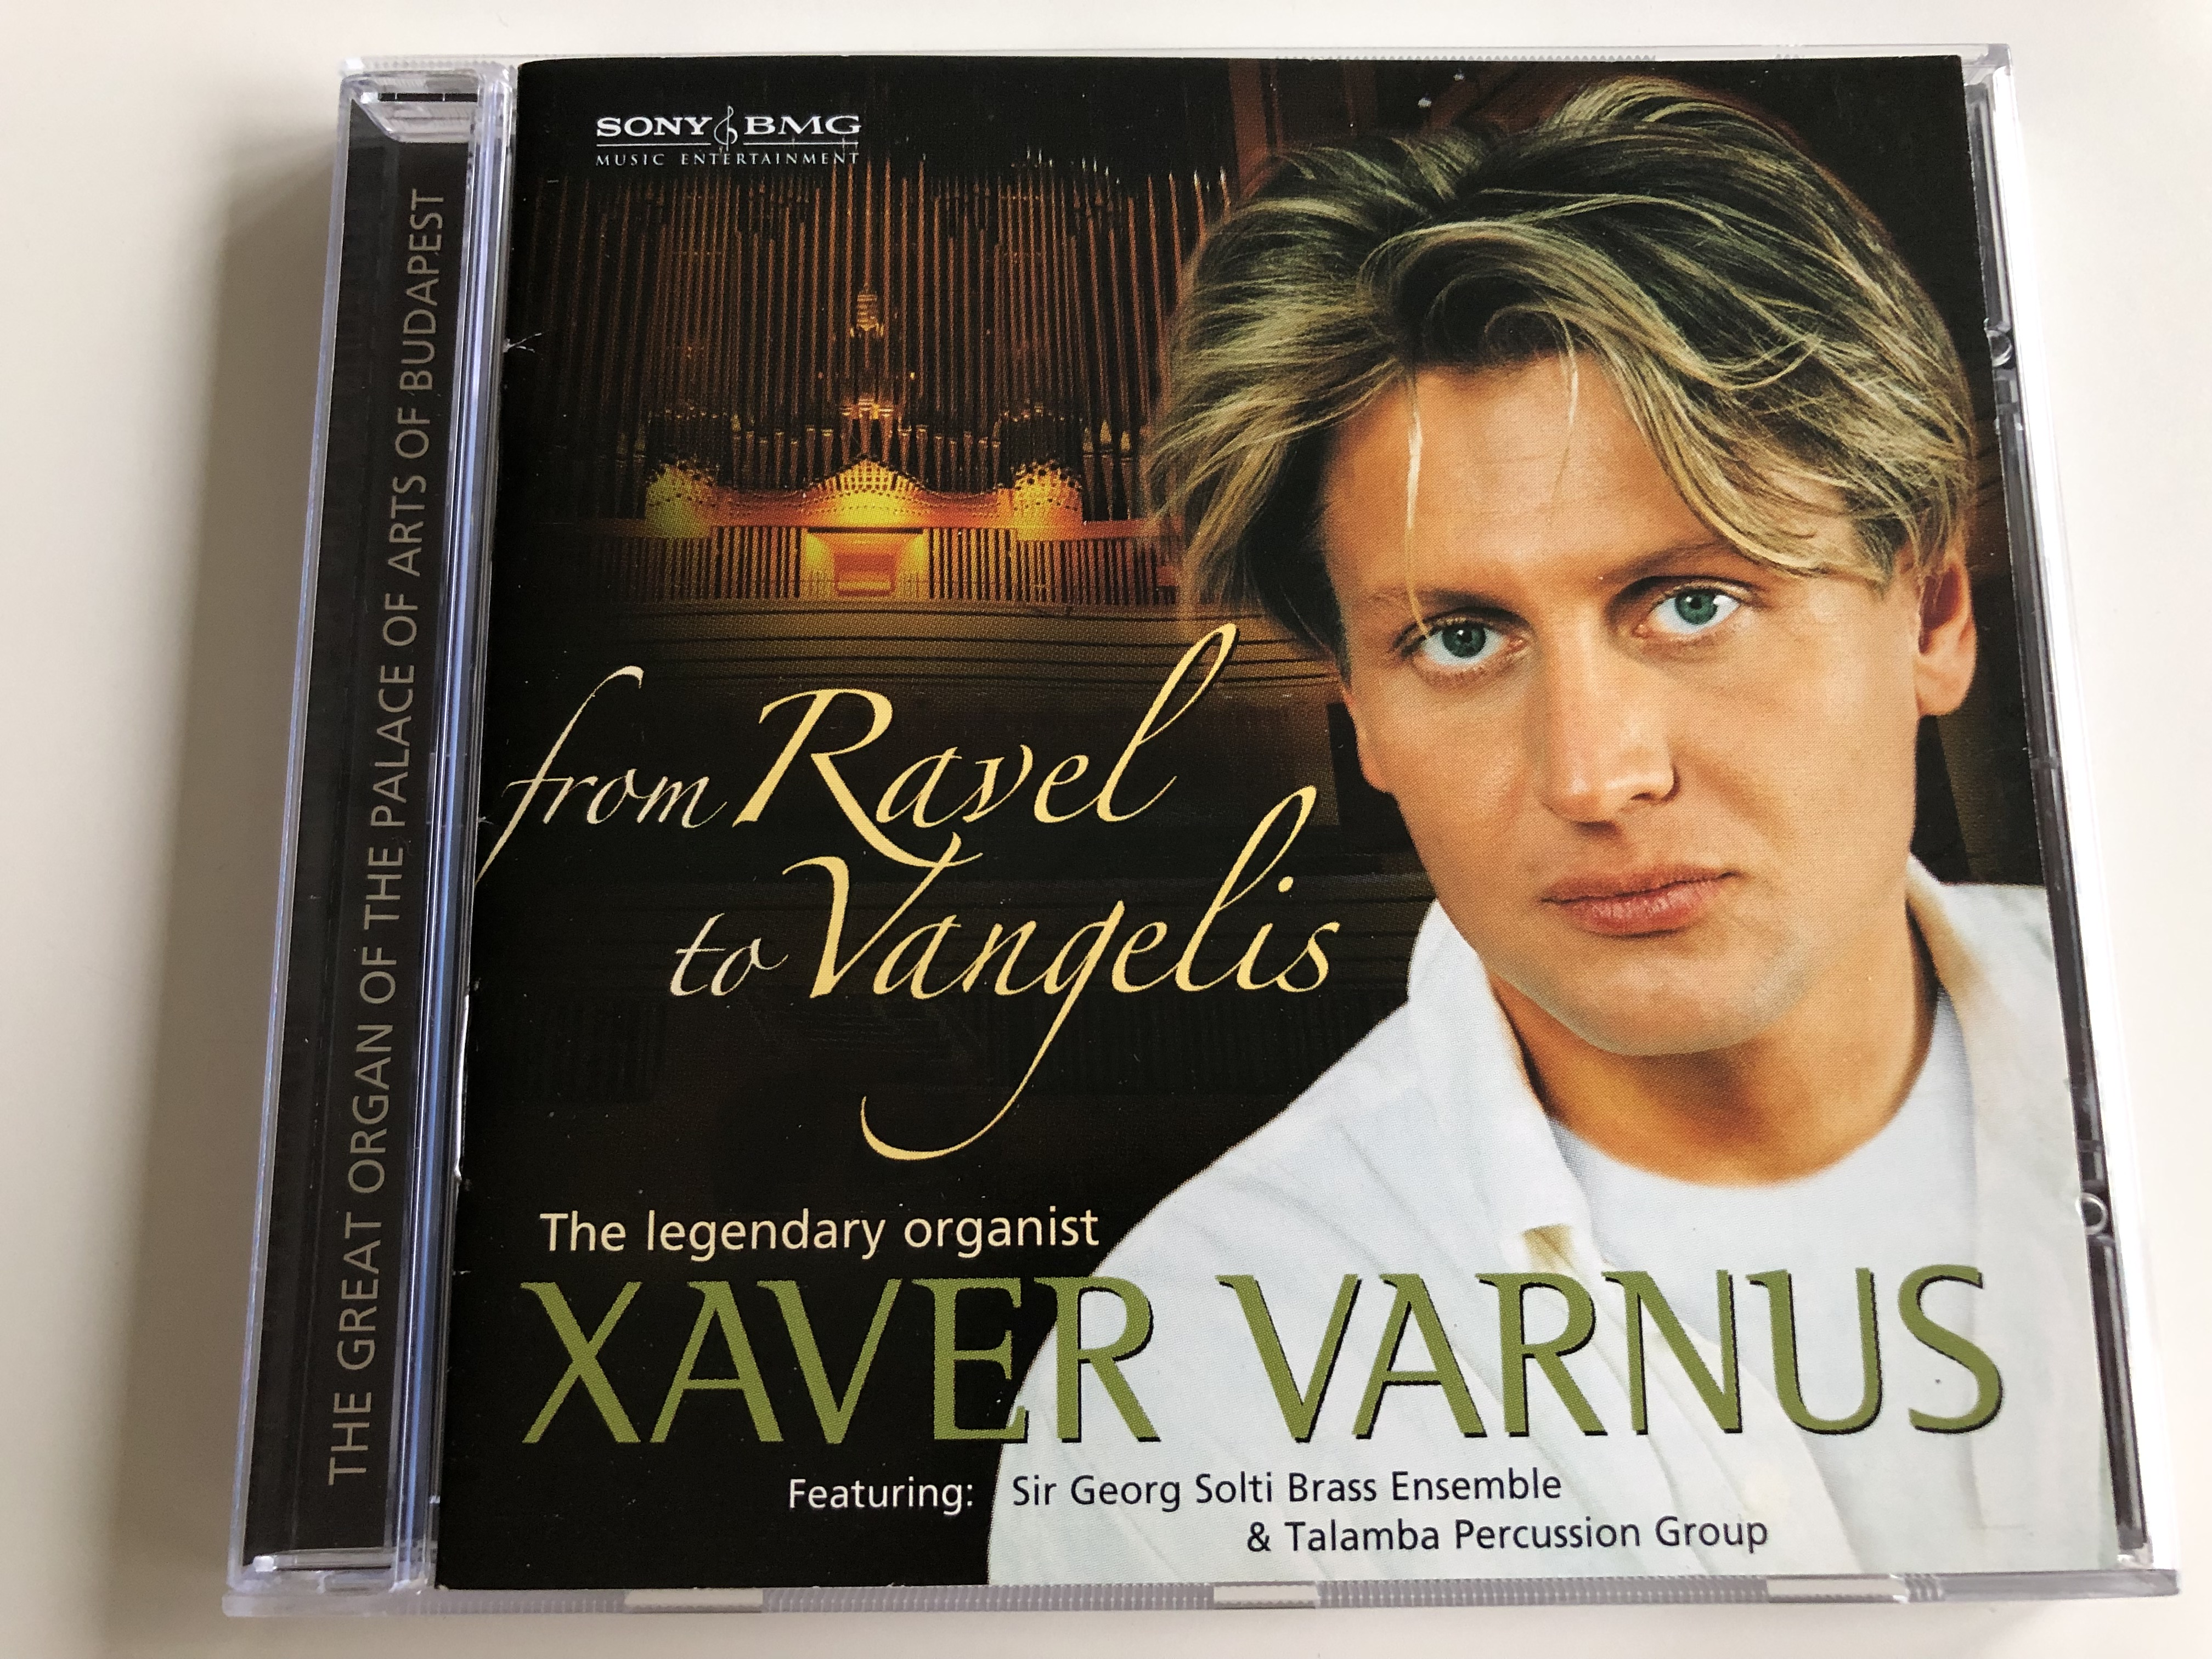 -xaver-varnus-the-legendary-organist-from-ravel-to-vangelis-featuring-sir-georg-solti-brass-ensemble-talamba-percussion-group-audio-cd-2007-sony-bmg-1-.jpg